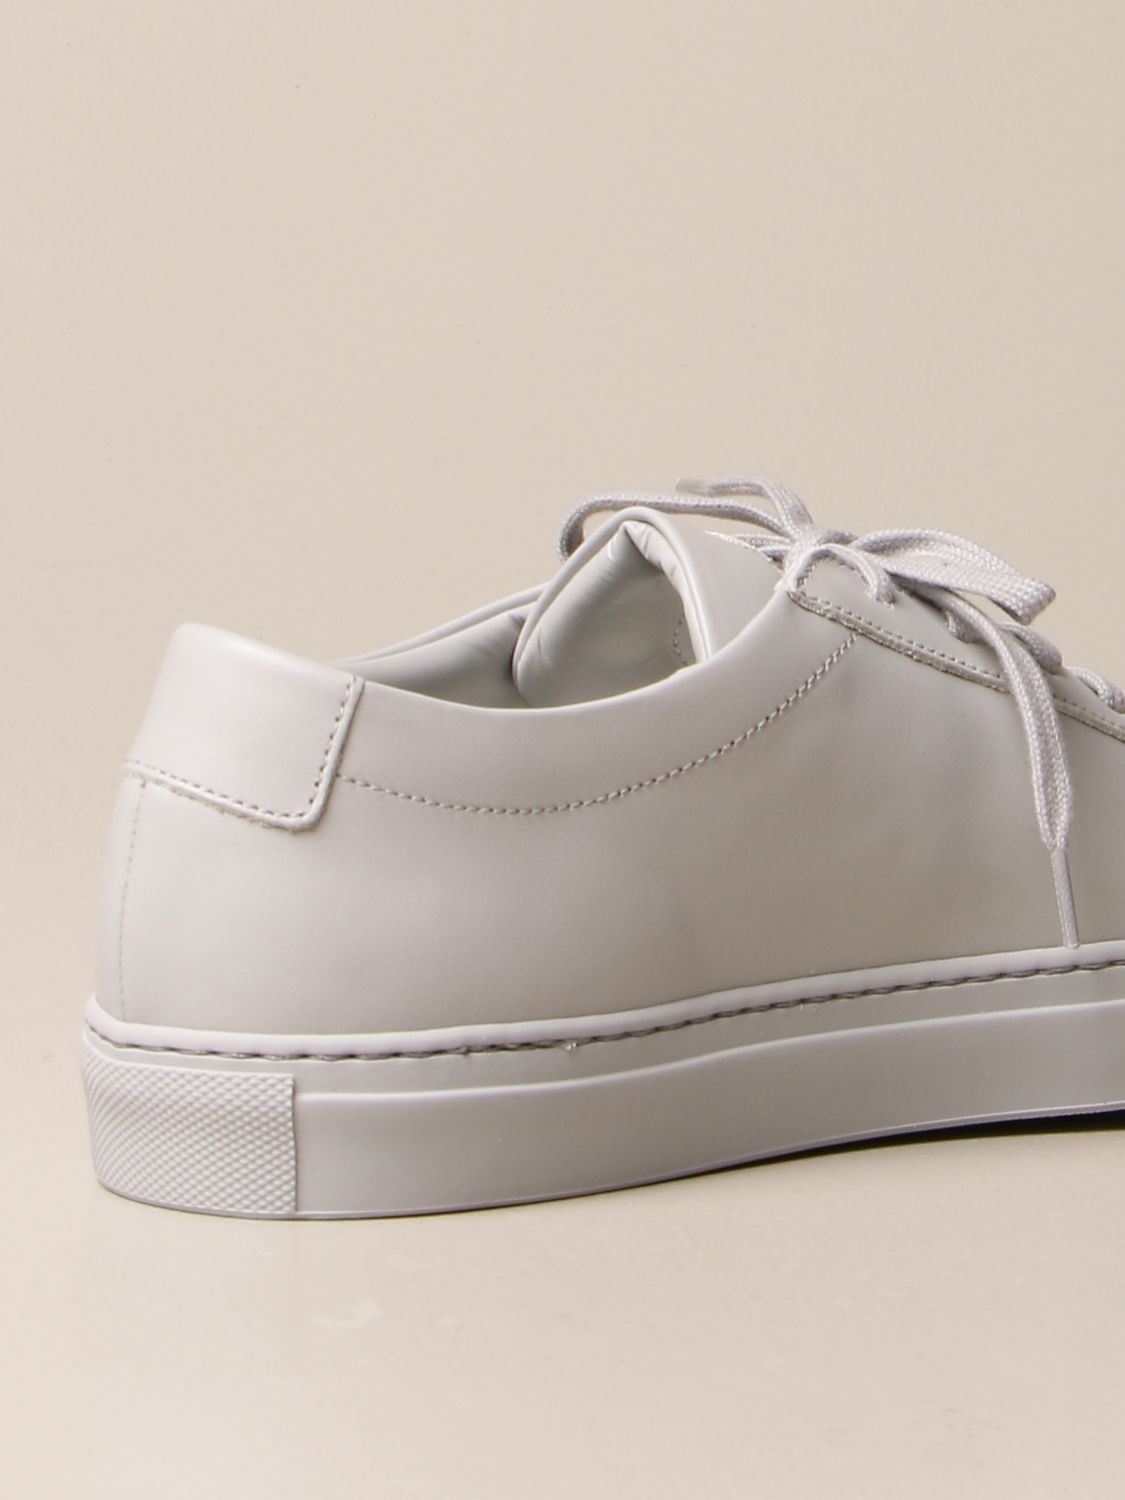 Sneakers Common Projects: Sneakers herren Common Projects grau 3